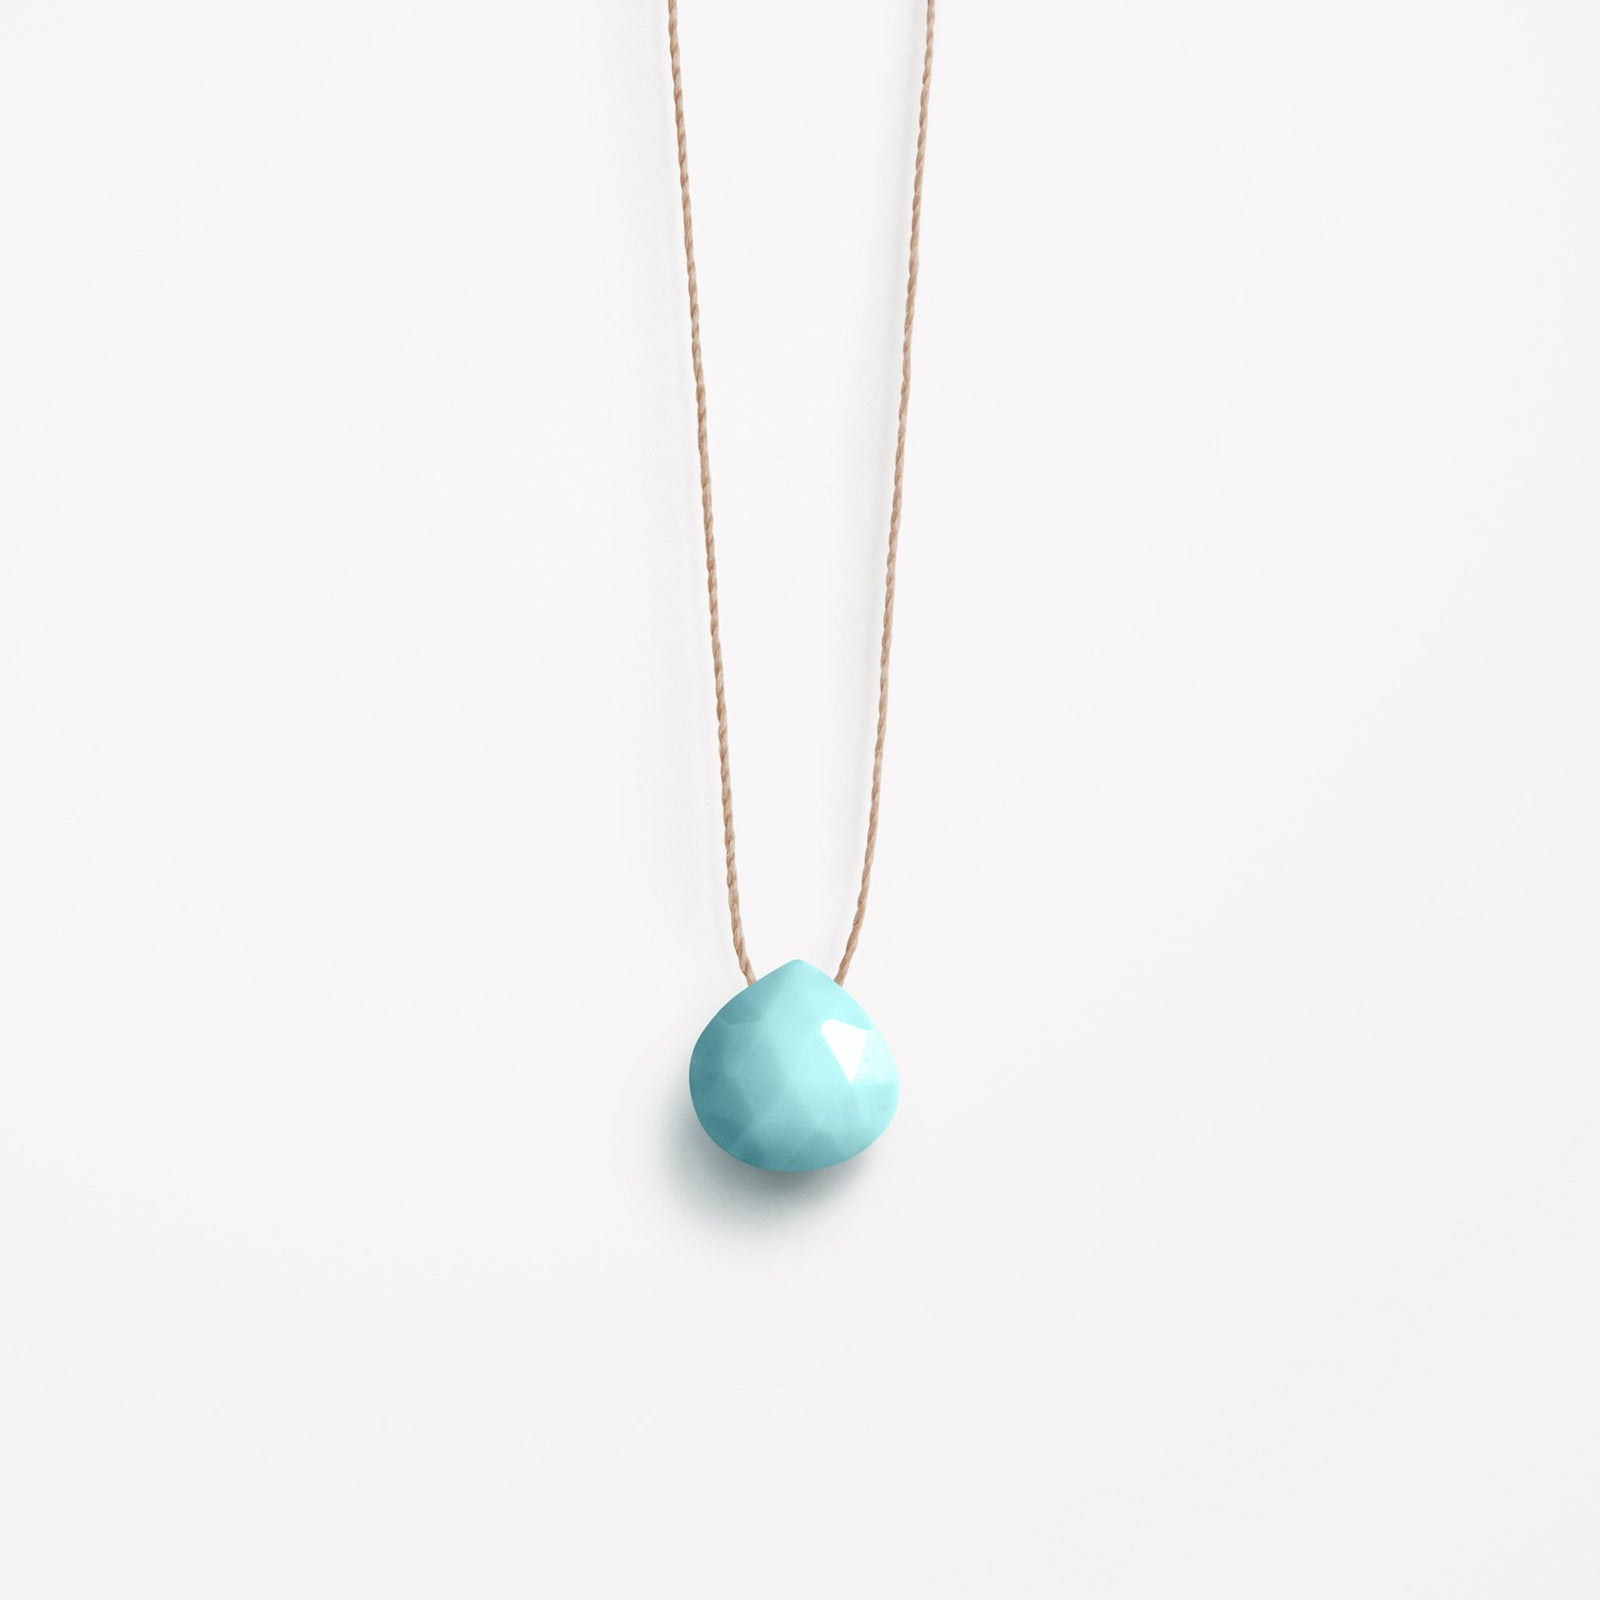 Wanderlust Life Ethically Handmade jewellery made in the UK. Minimalist gold and fine cord jewellery. december birthstone, arizona turquoise fine cord necklace